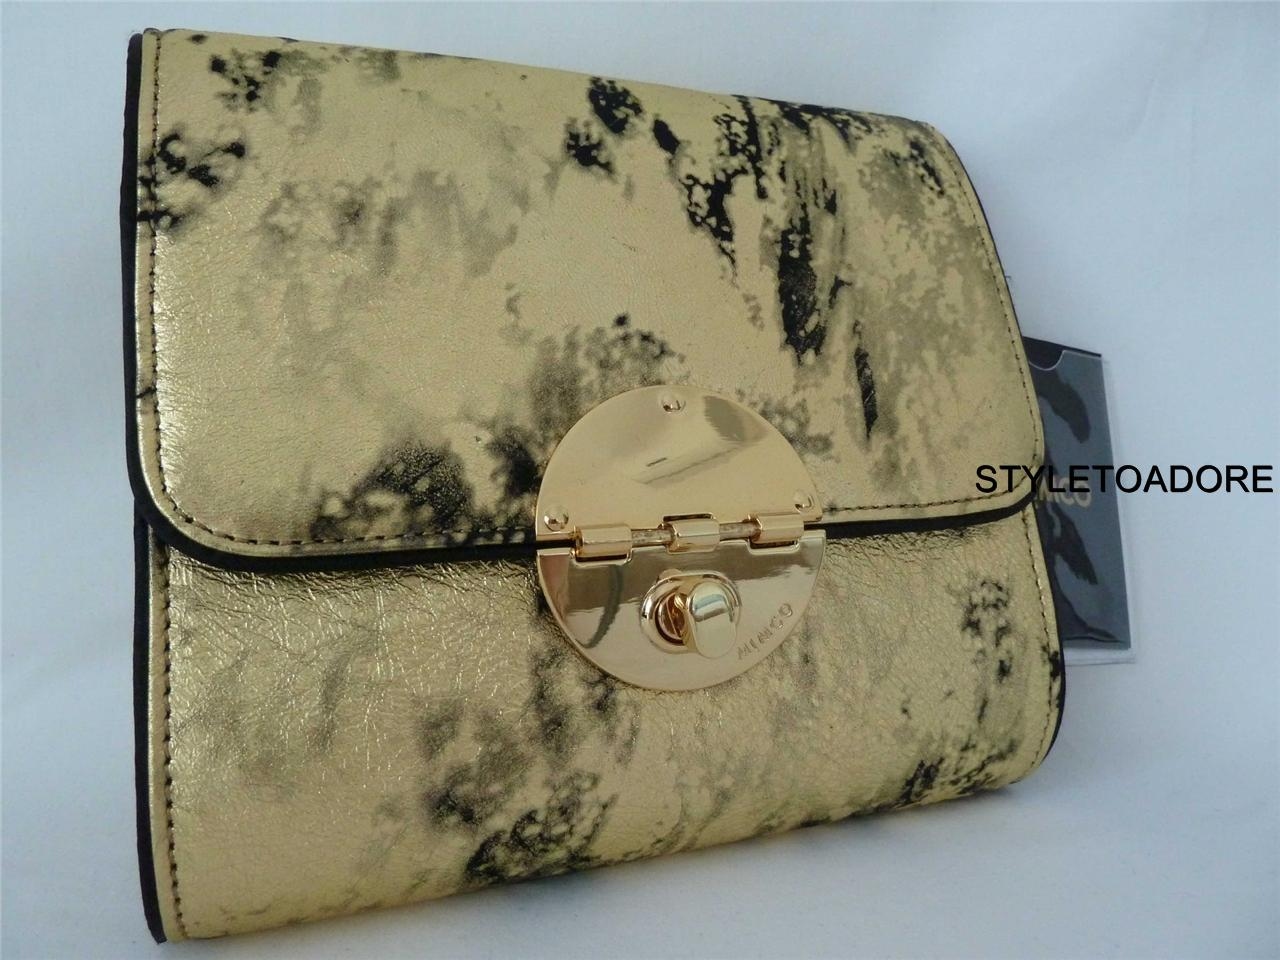 MIMCO-SQUARE-TUX-CLUTCH-BAG-GOLD-LAMBS-LEATHER-RRP-249-00